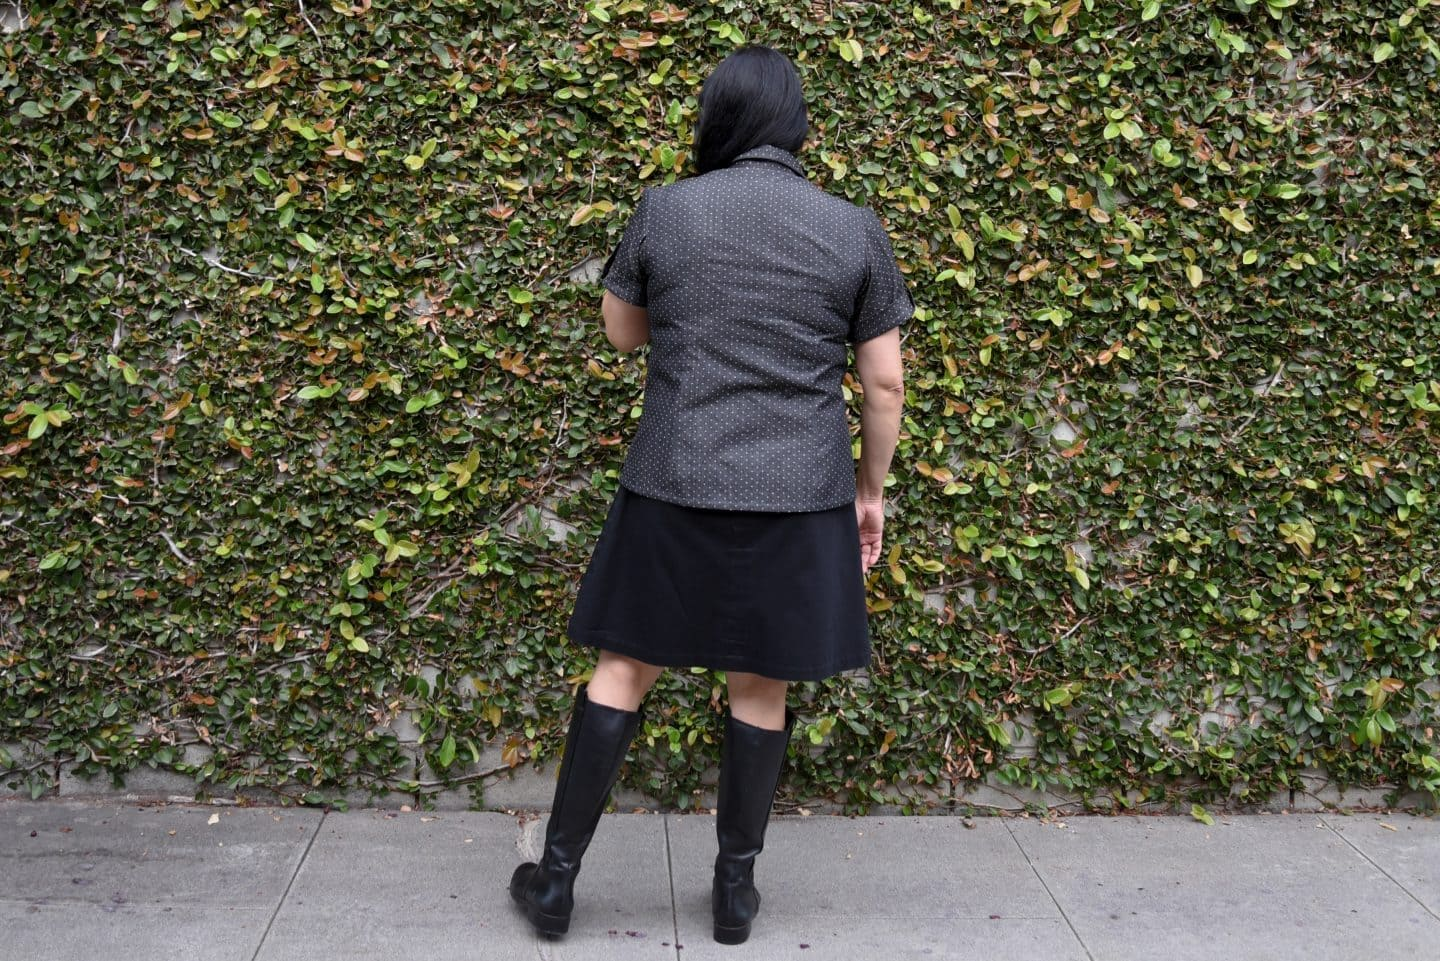 Image of a woman with long black hair standing with her back to the camera in front of a wall covered in vine wearing a short-sleeved polka-dotted buttoned up shirt, black knee-length skirt, and black boots to her knees